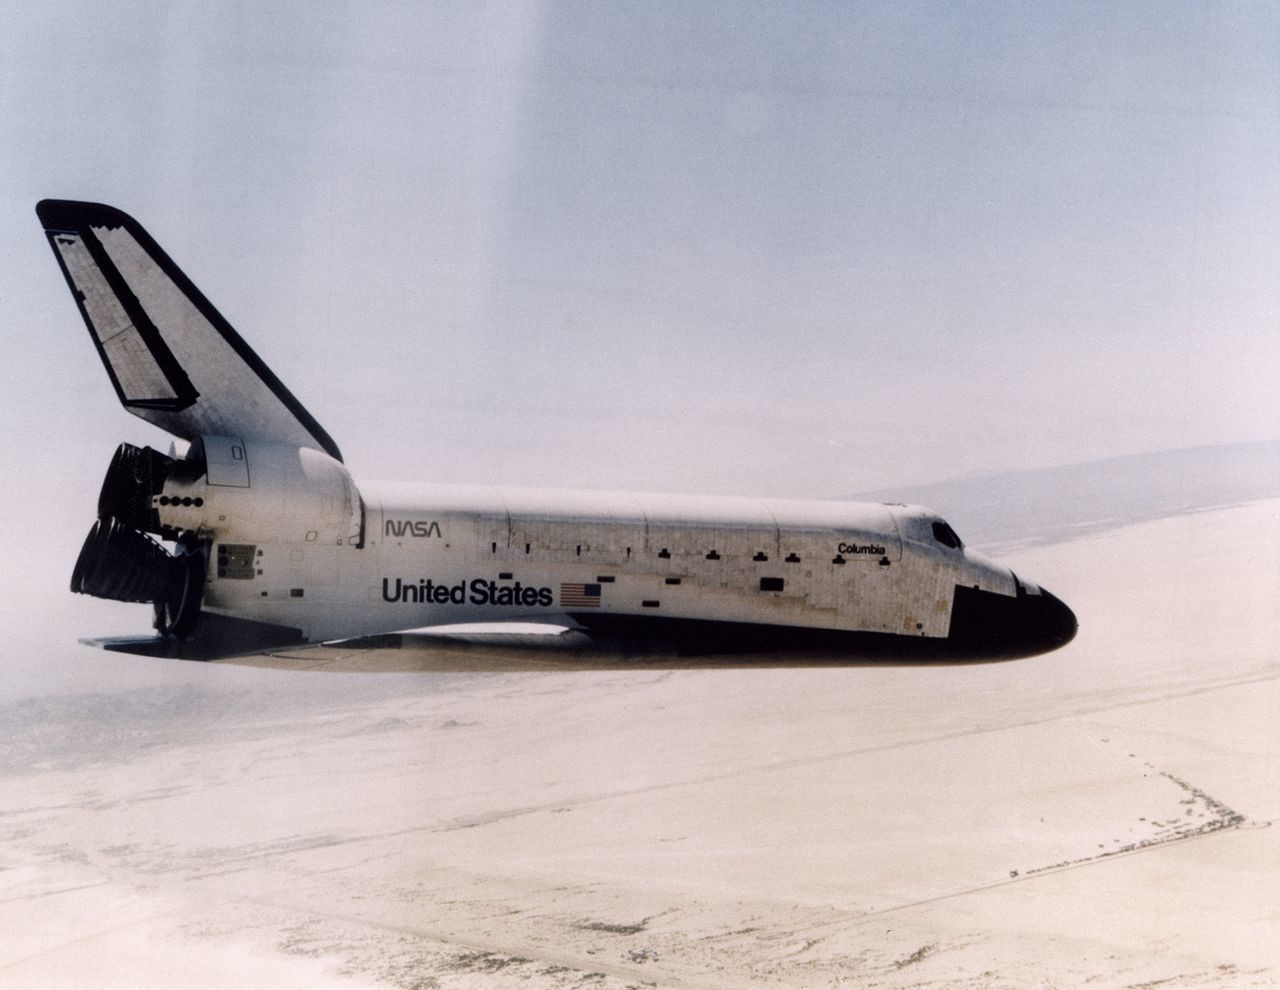 Columbia, STS-1